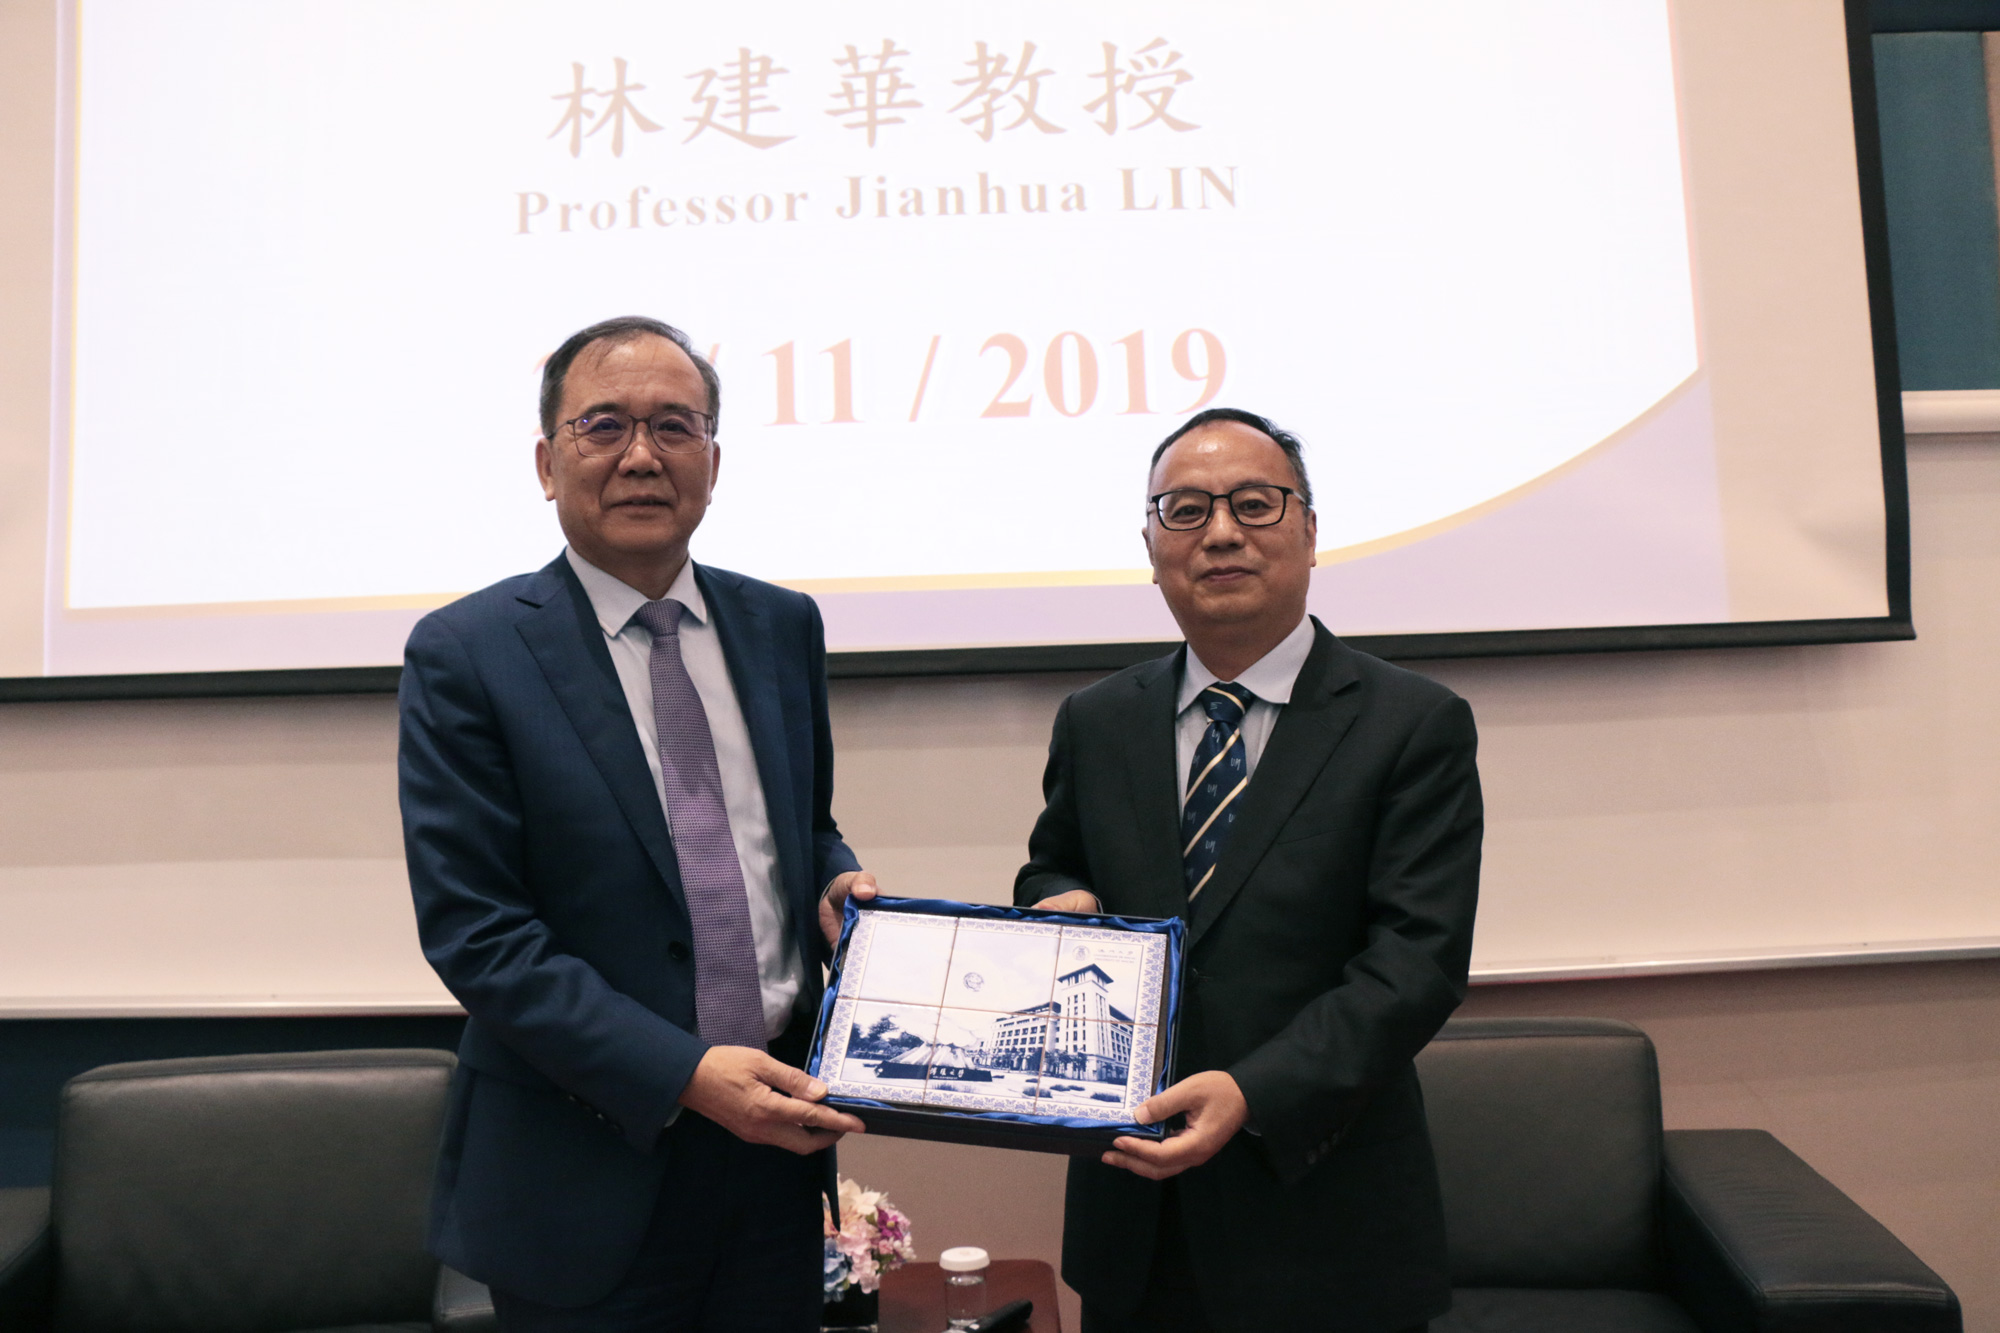 Yonghua Song (right) presents a souvenir to Lin